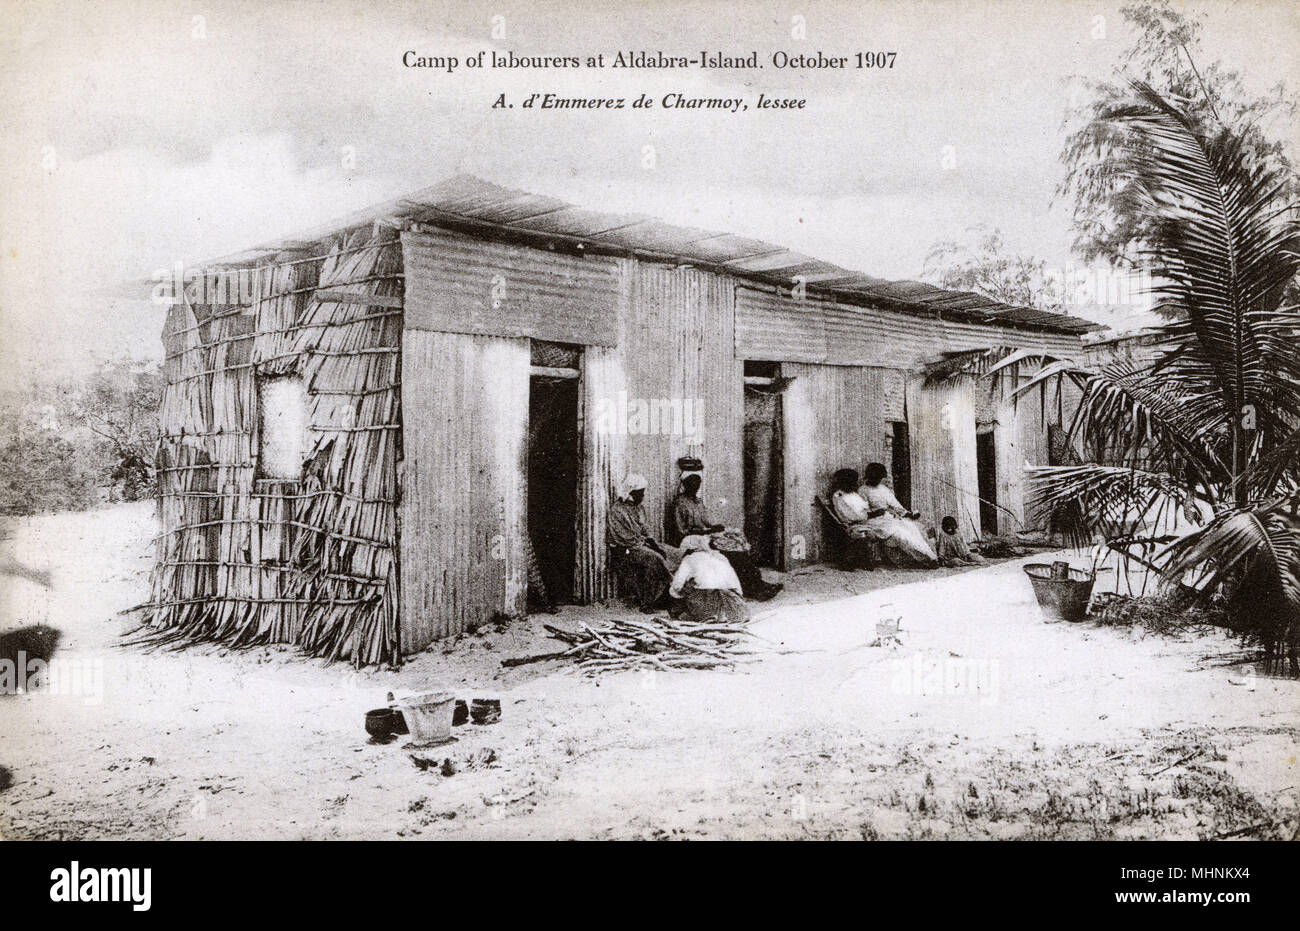 Picault Island, part of the Aldabra Group, part of the Outer Islands of the Seychelles, lying in the southwest of the island nation, 1,000 kilometres (620 miles) from Mahe Island. Labourers' House - the whole island appears to have been turned over to the harvesting and drying of mangrove bark.     Date: 1907 - Stock Image